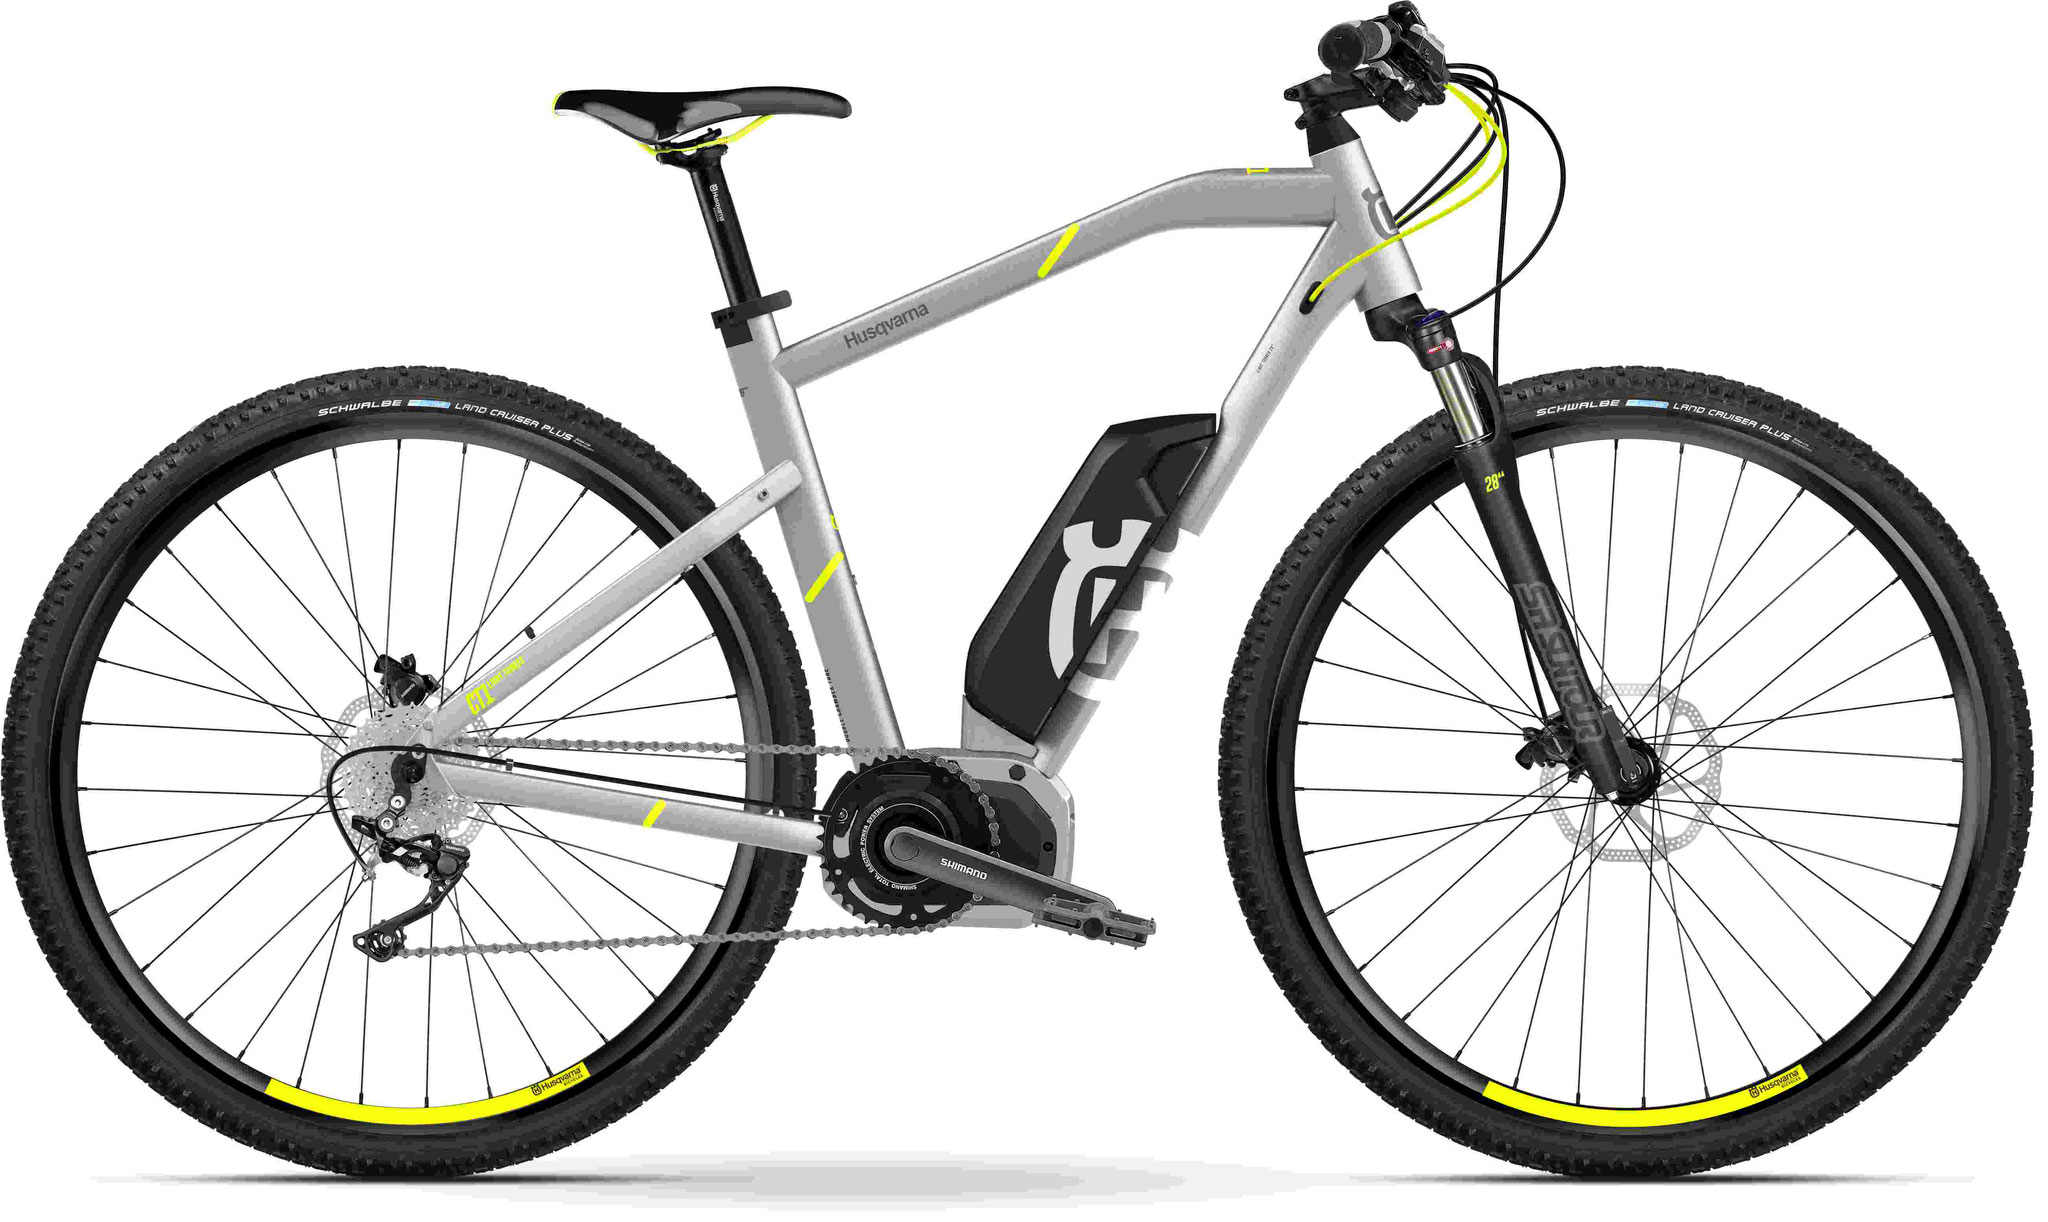 Husqvarna Cross Tourer CT1 e-Mountainbike, MTB Pedelec 2018 silber/gelb Diamantrahmen